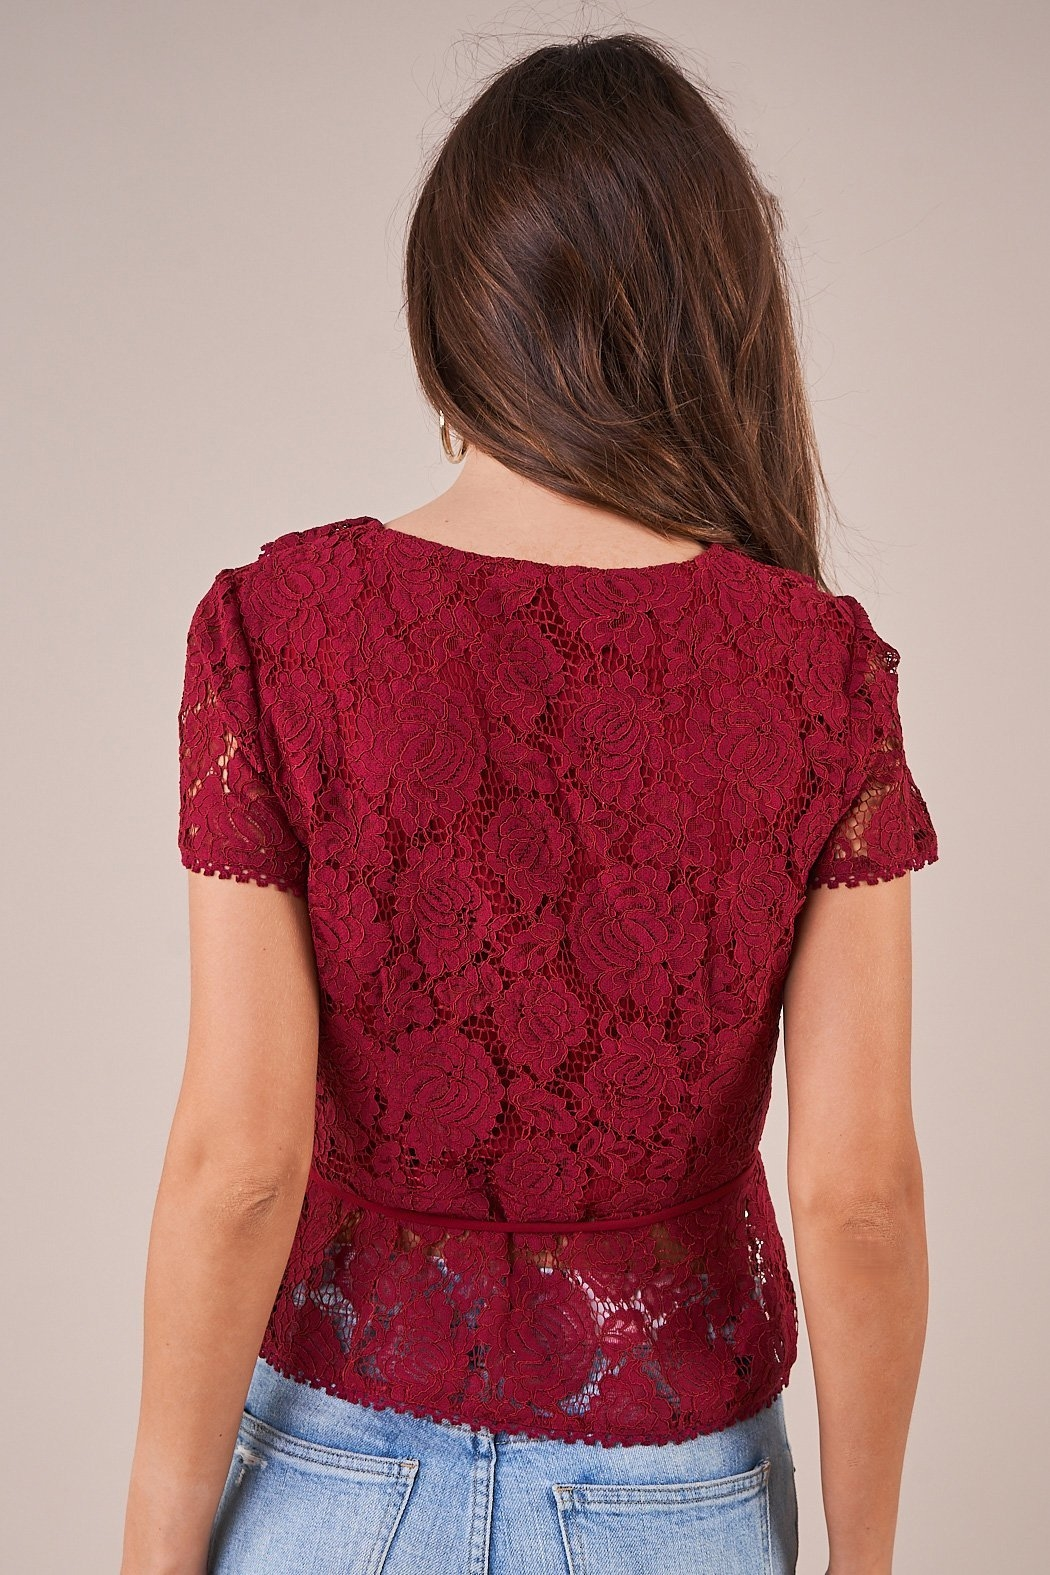 Sugarlips Chantilly Lace Wrap Top - Front Full Image